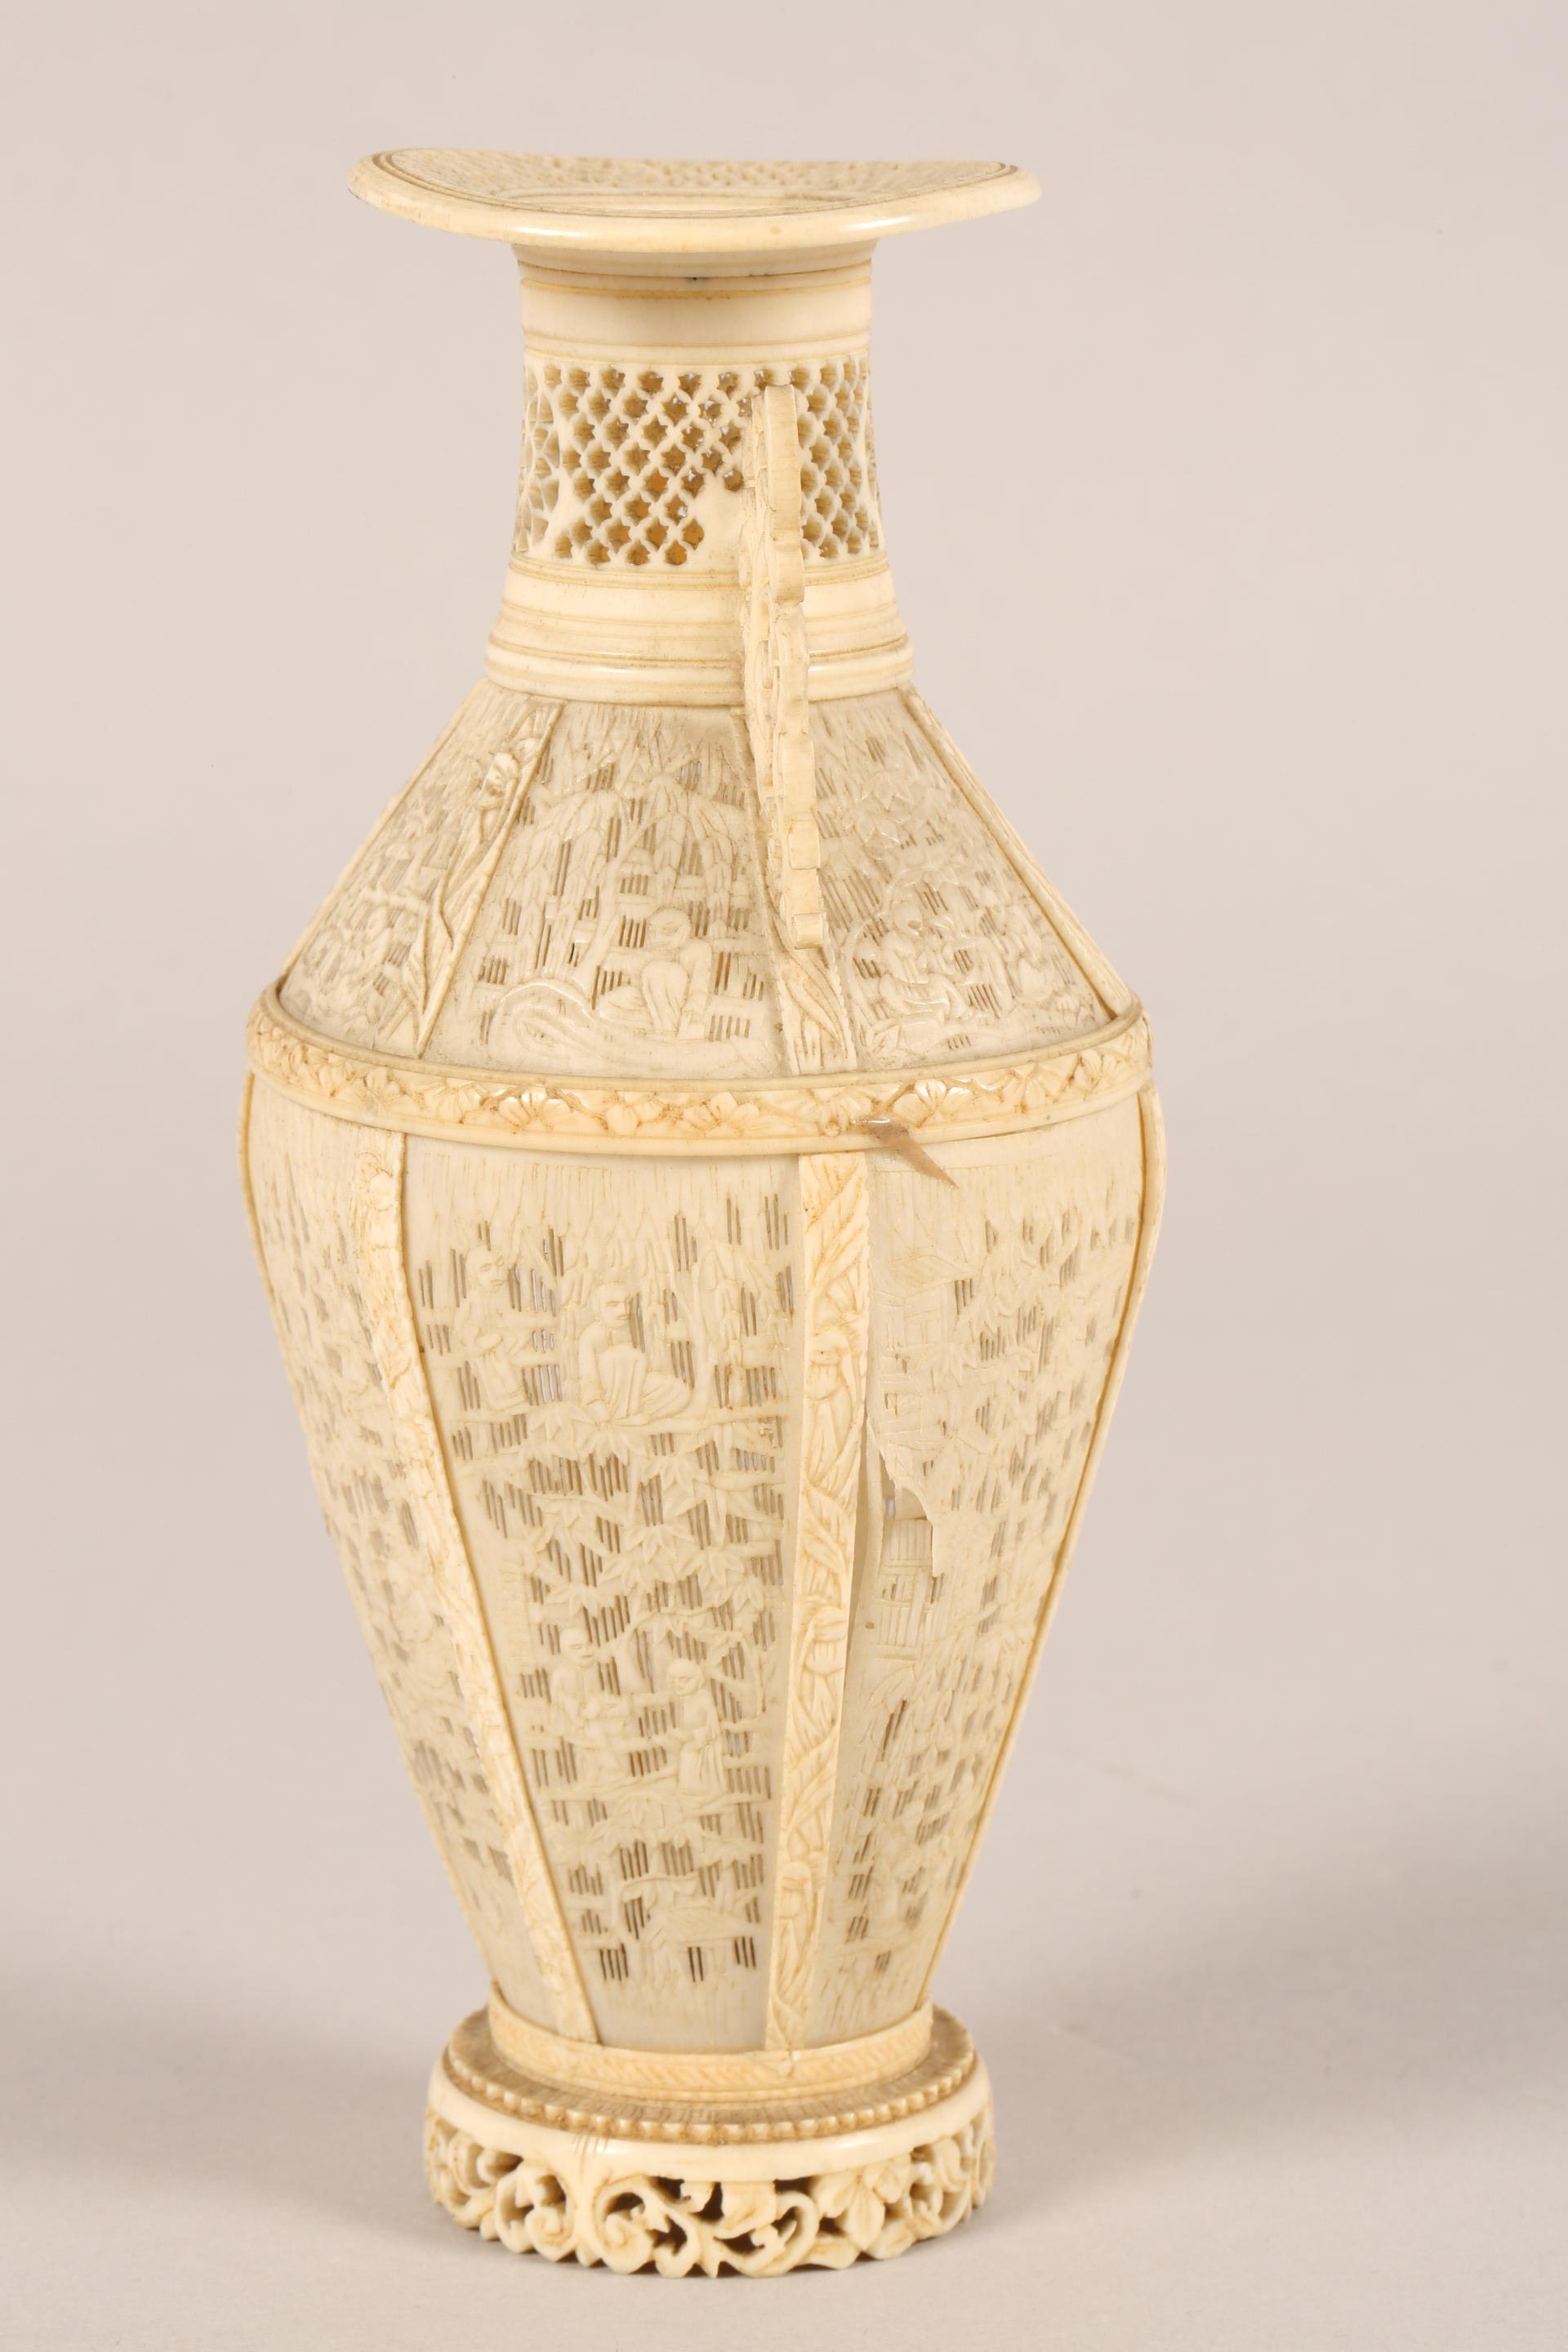 19th century Chinese Canton reticulated ivory twin handled vase (minor damages) 17.5cm high. - Image 4 of 7